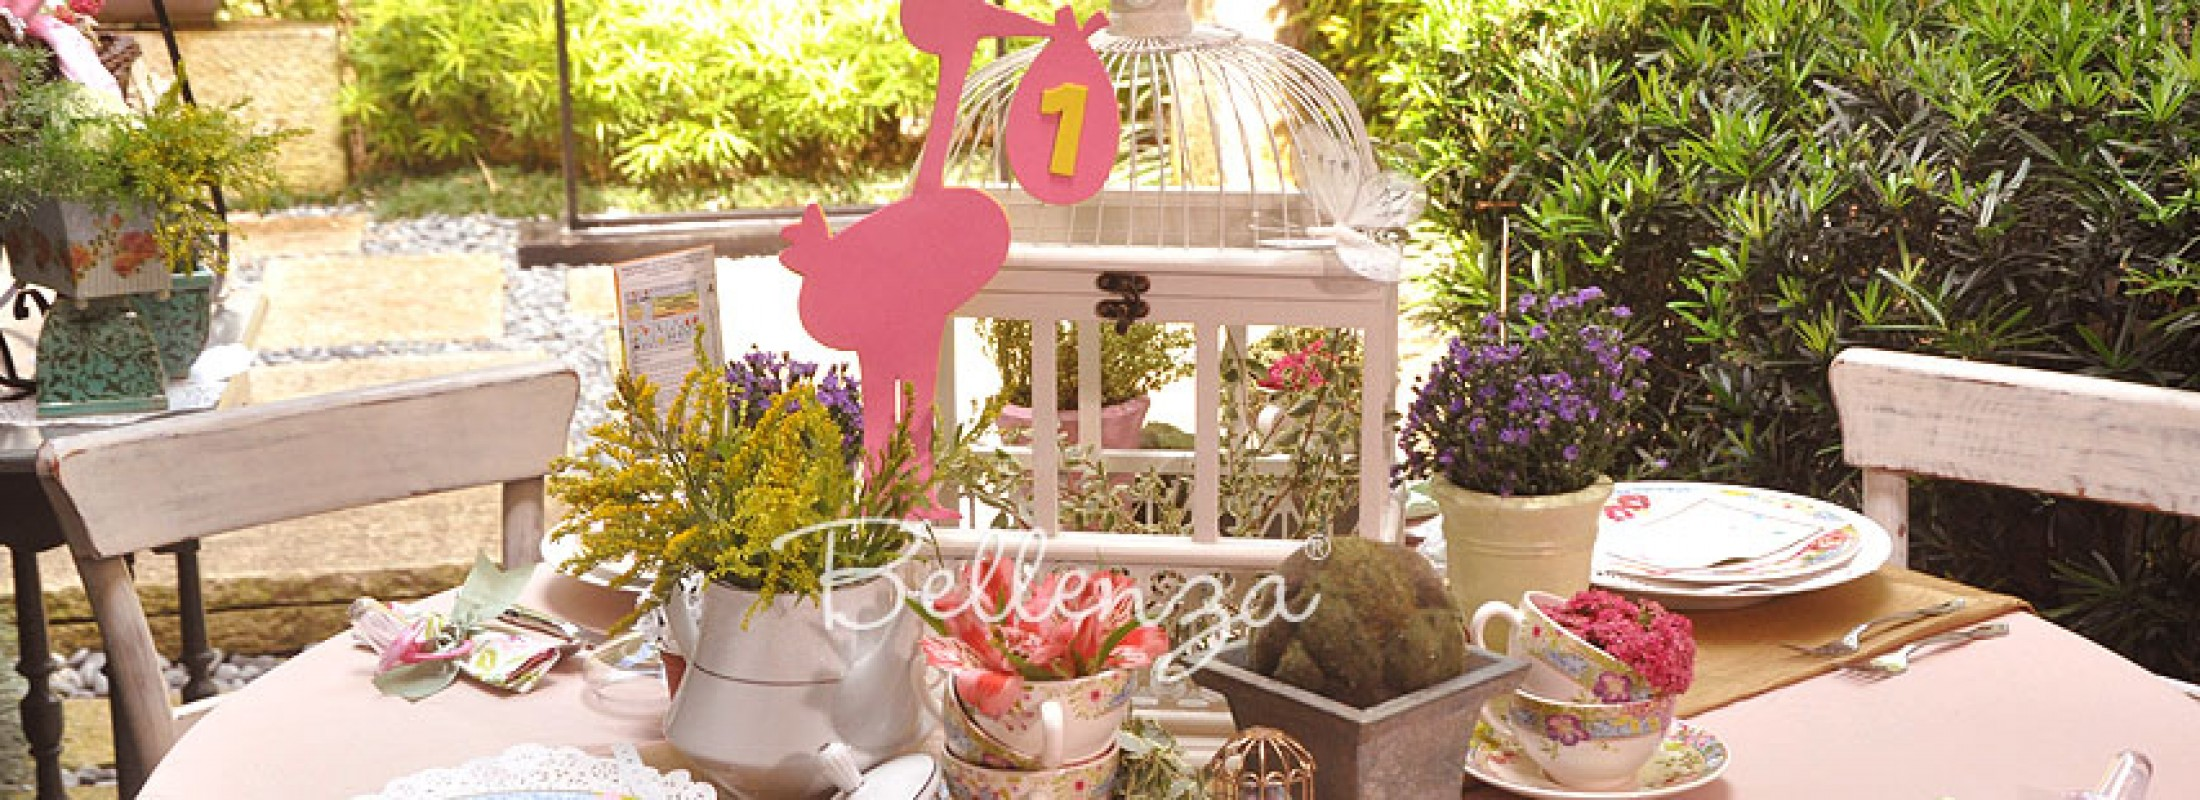 Spring Baby Shower with a Garden Theme Decorating Ideas Tips